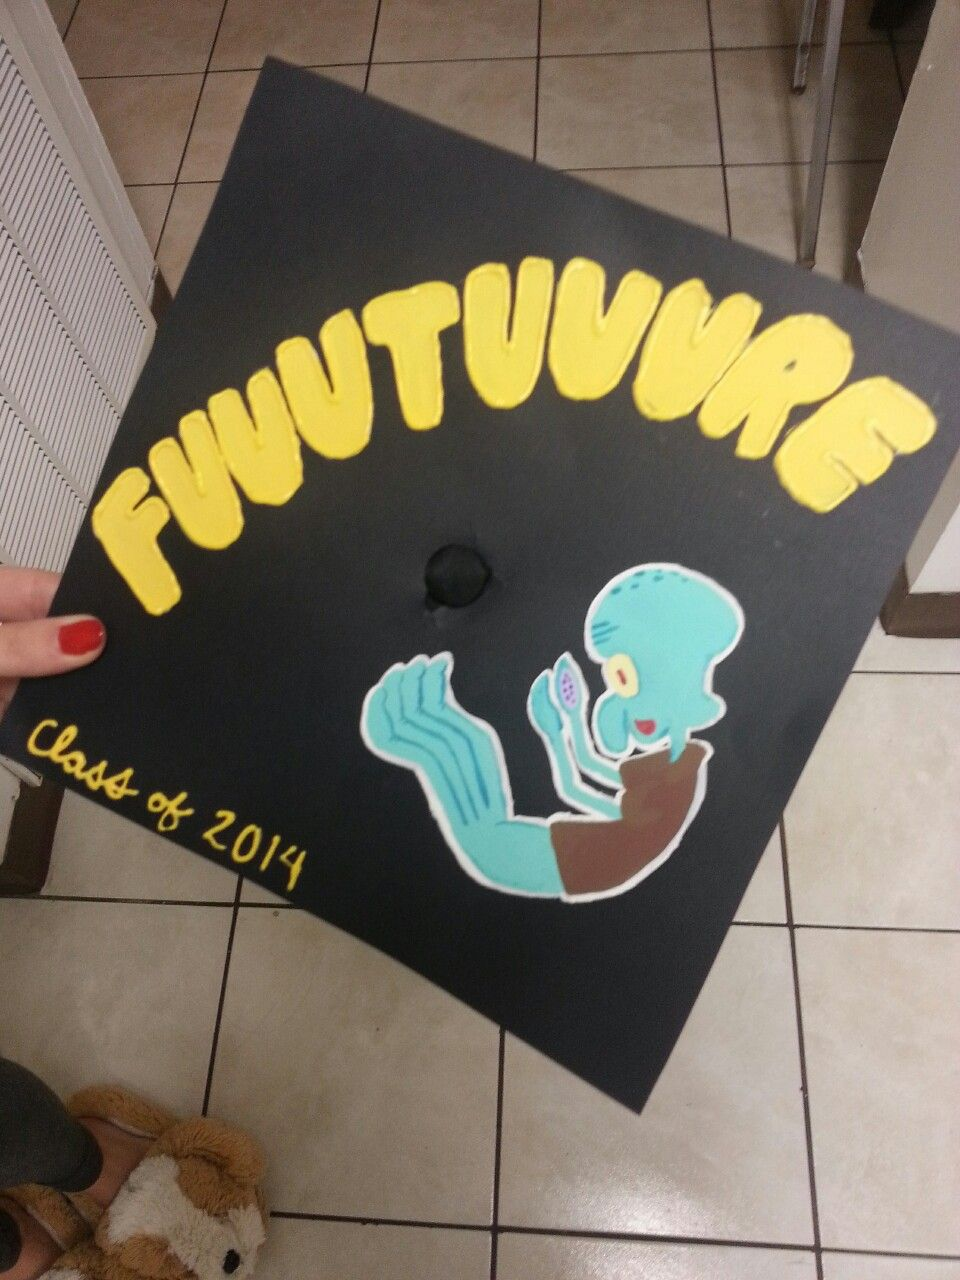 Medium Of Funny Graduation Caps